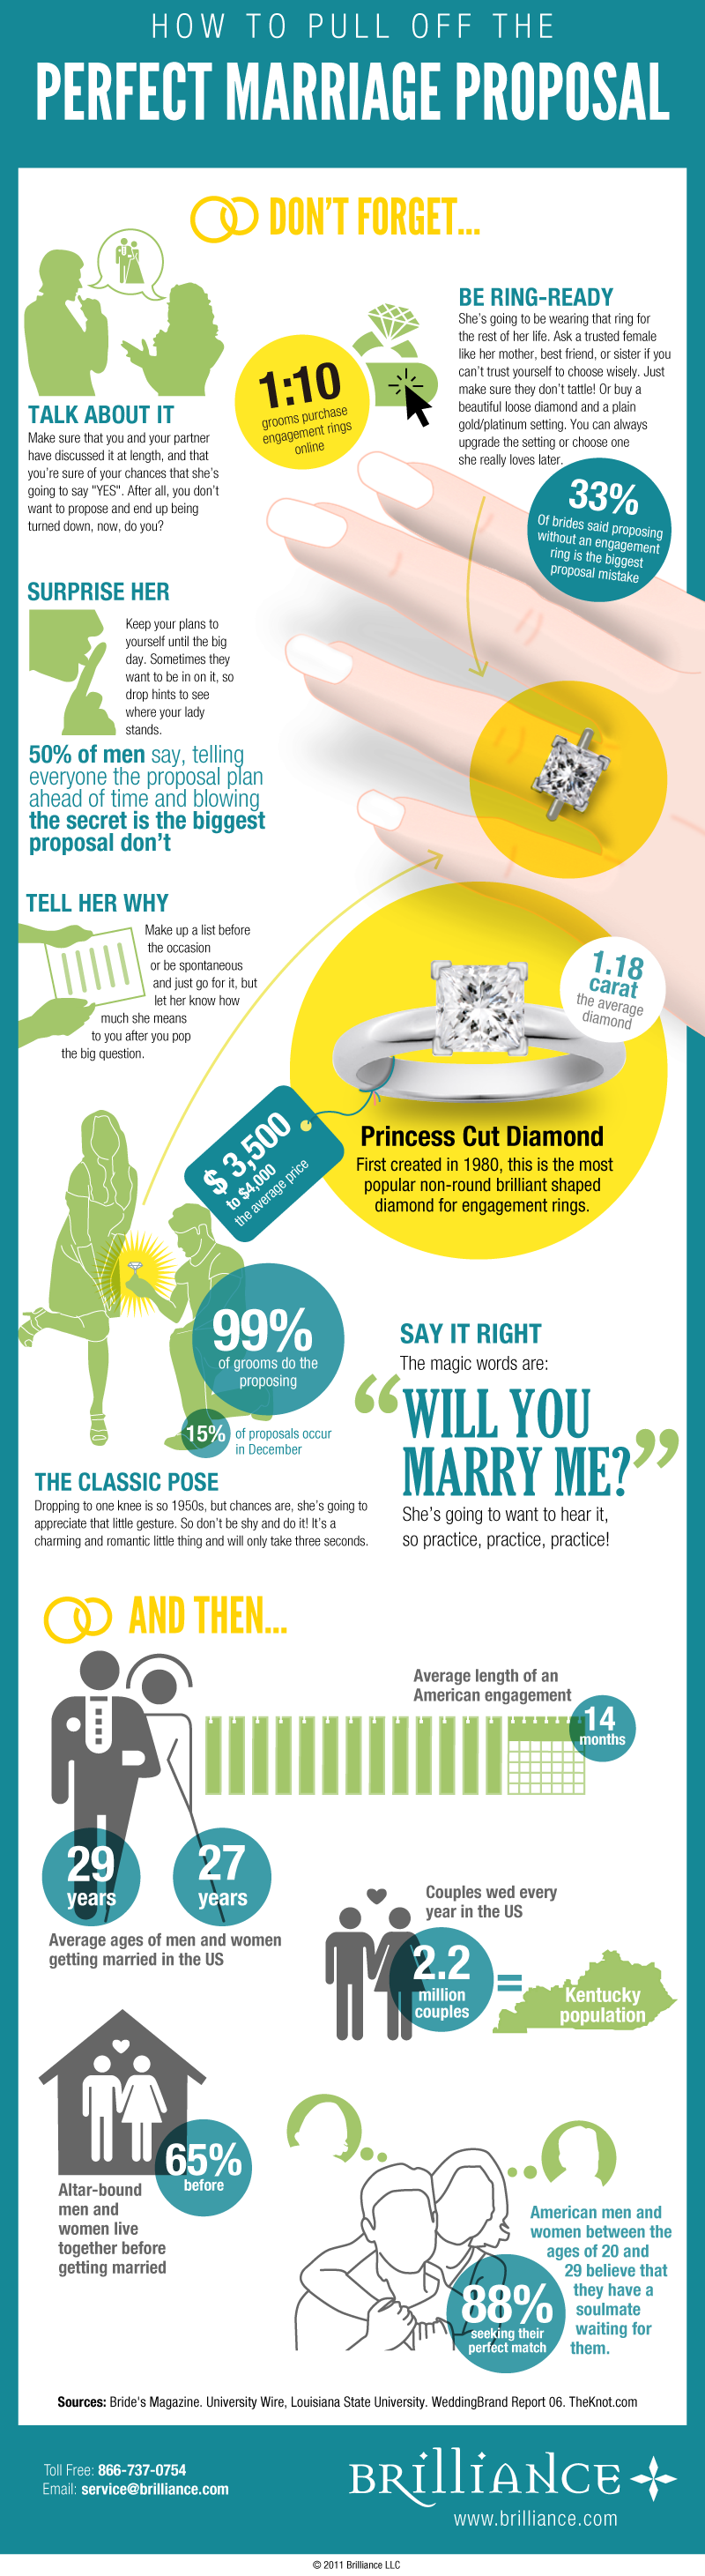 Marriage Proposal Guide